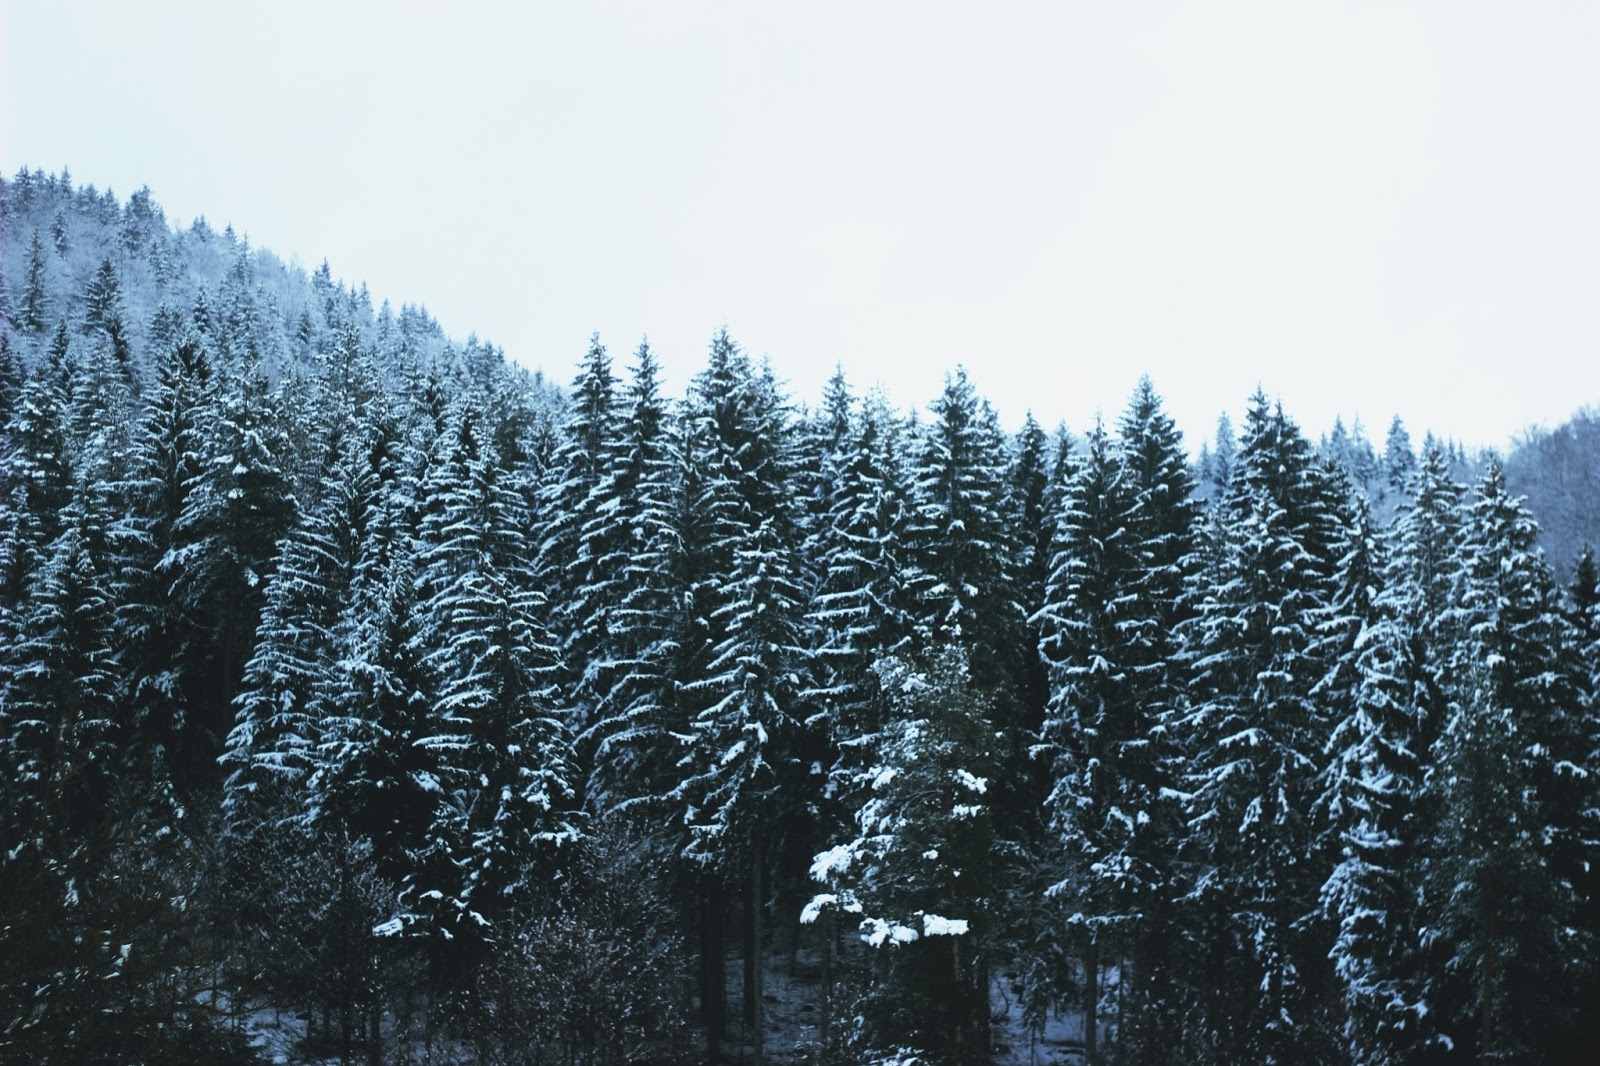 filipa canic blog, youarethepoet, you are the poet blog, winter, forest,